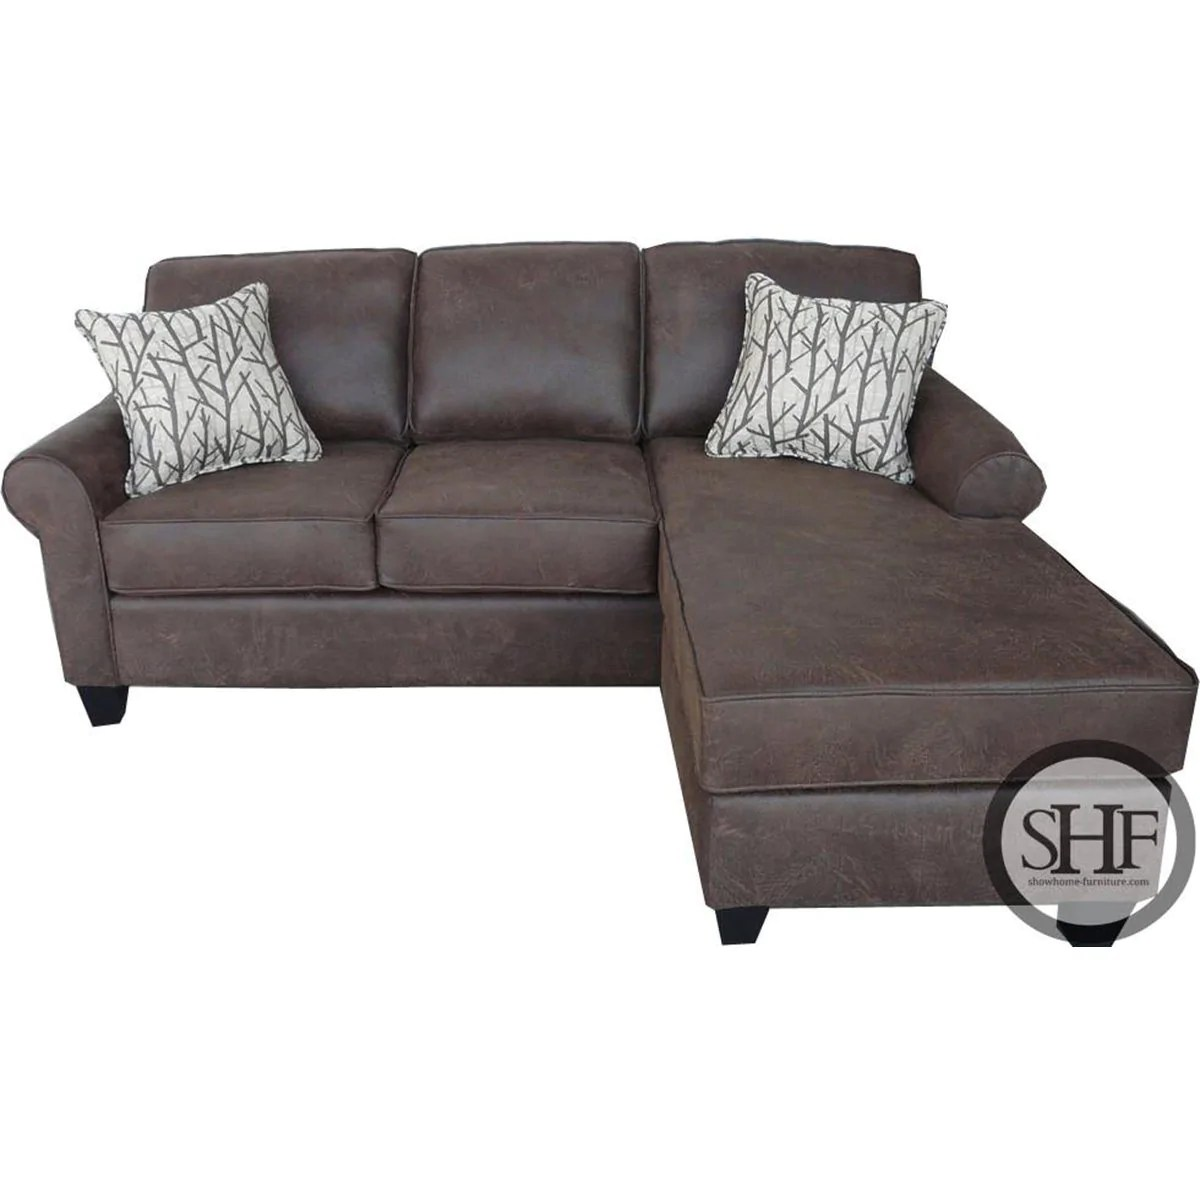 sofa w chaise studio outdoor converting patio furniture flip and queen bed showhome